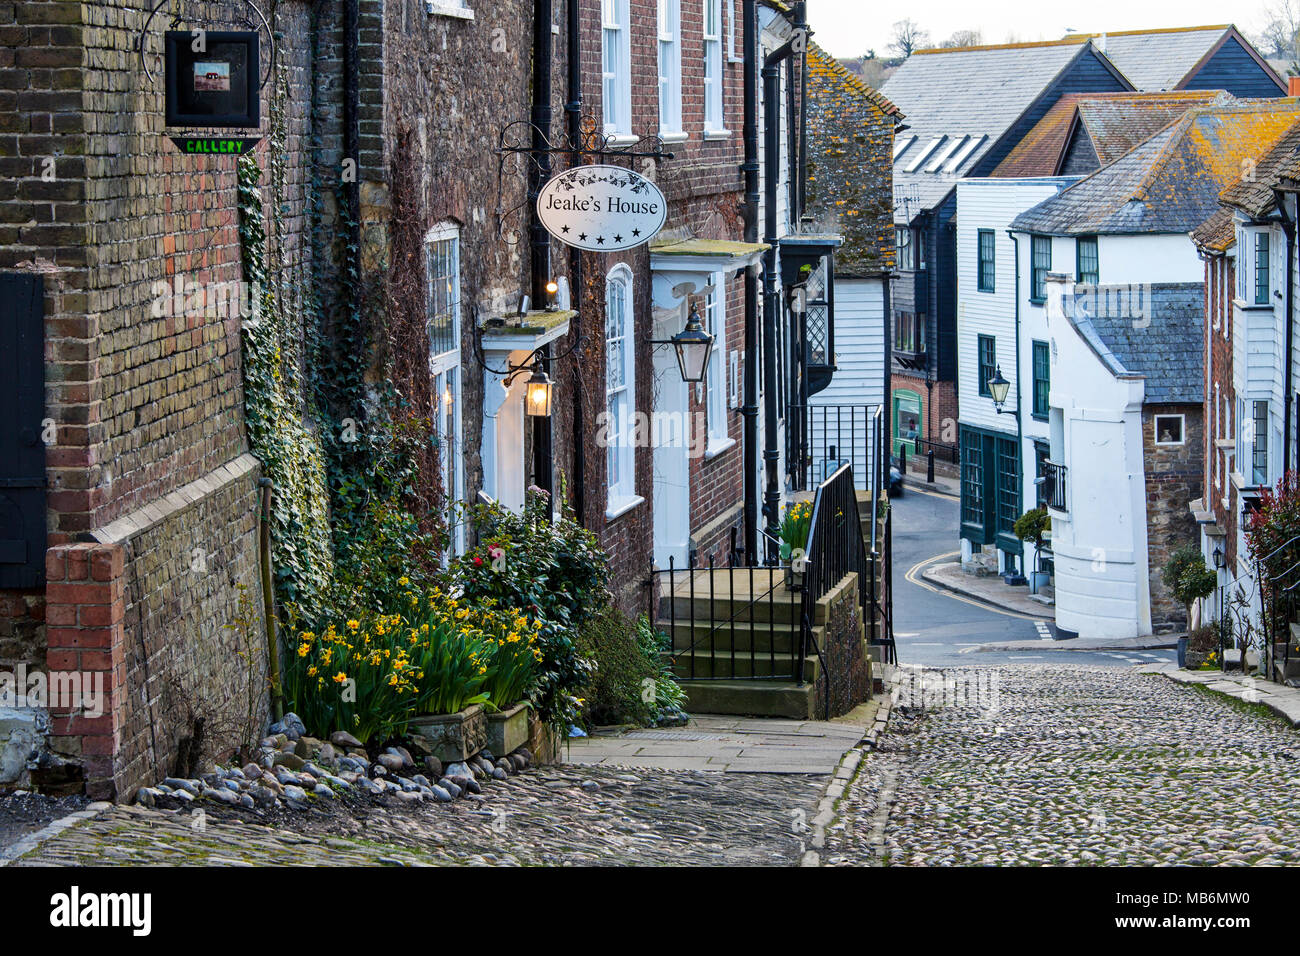 RYE, UK - APRIL 5th, 2018: Mermaid Street in  Rye is an old cobbled street which used to be the ancient town's main road. This famous street is lined  - Stock Image